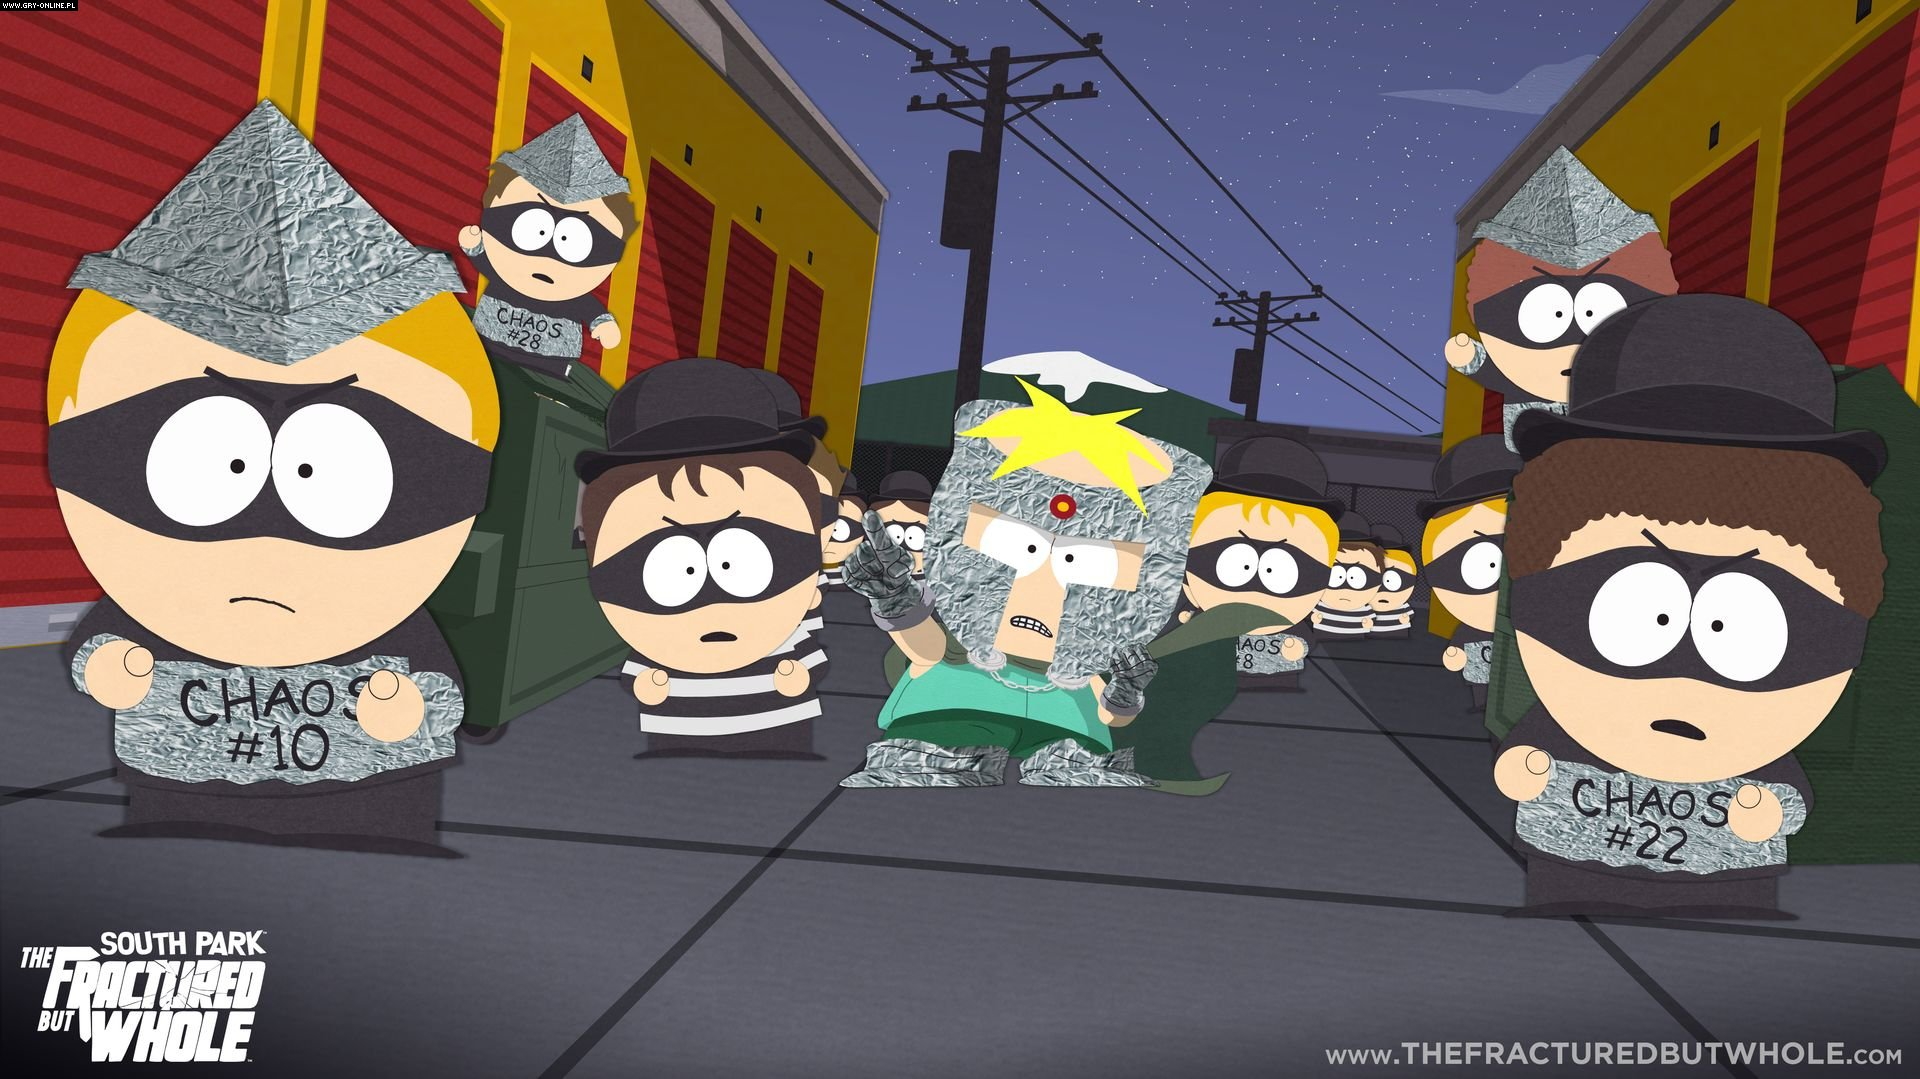 South Park: The Fractured But Whole PC, XONE, PS4 Games Image 18/21, Ubisoft